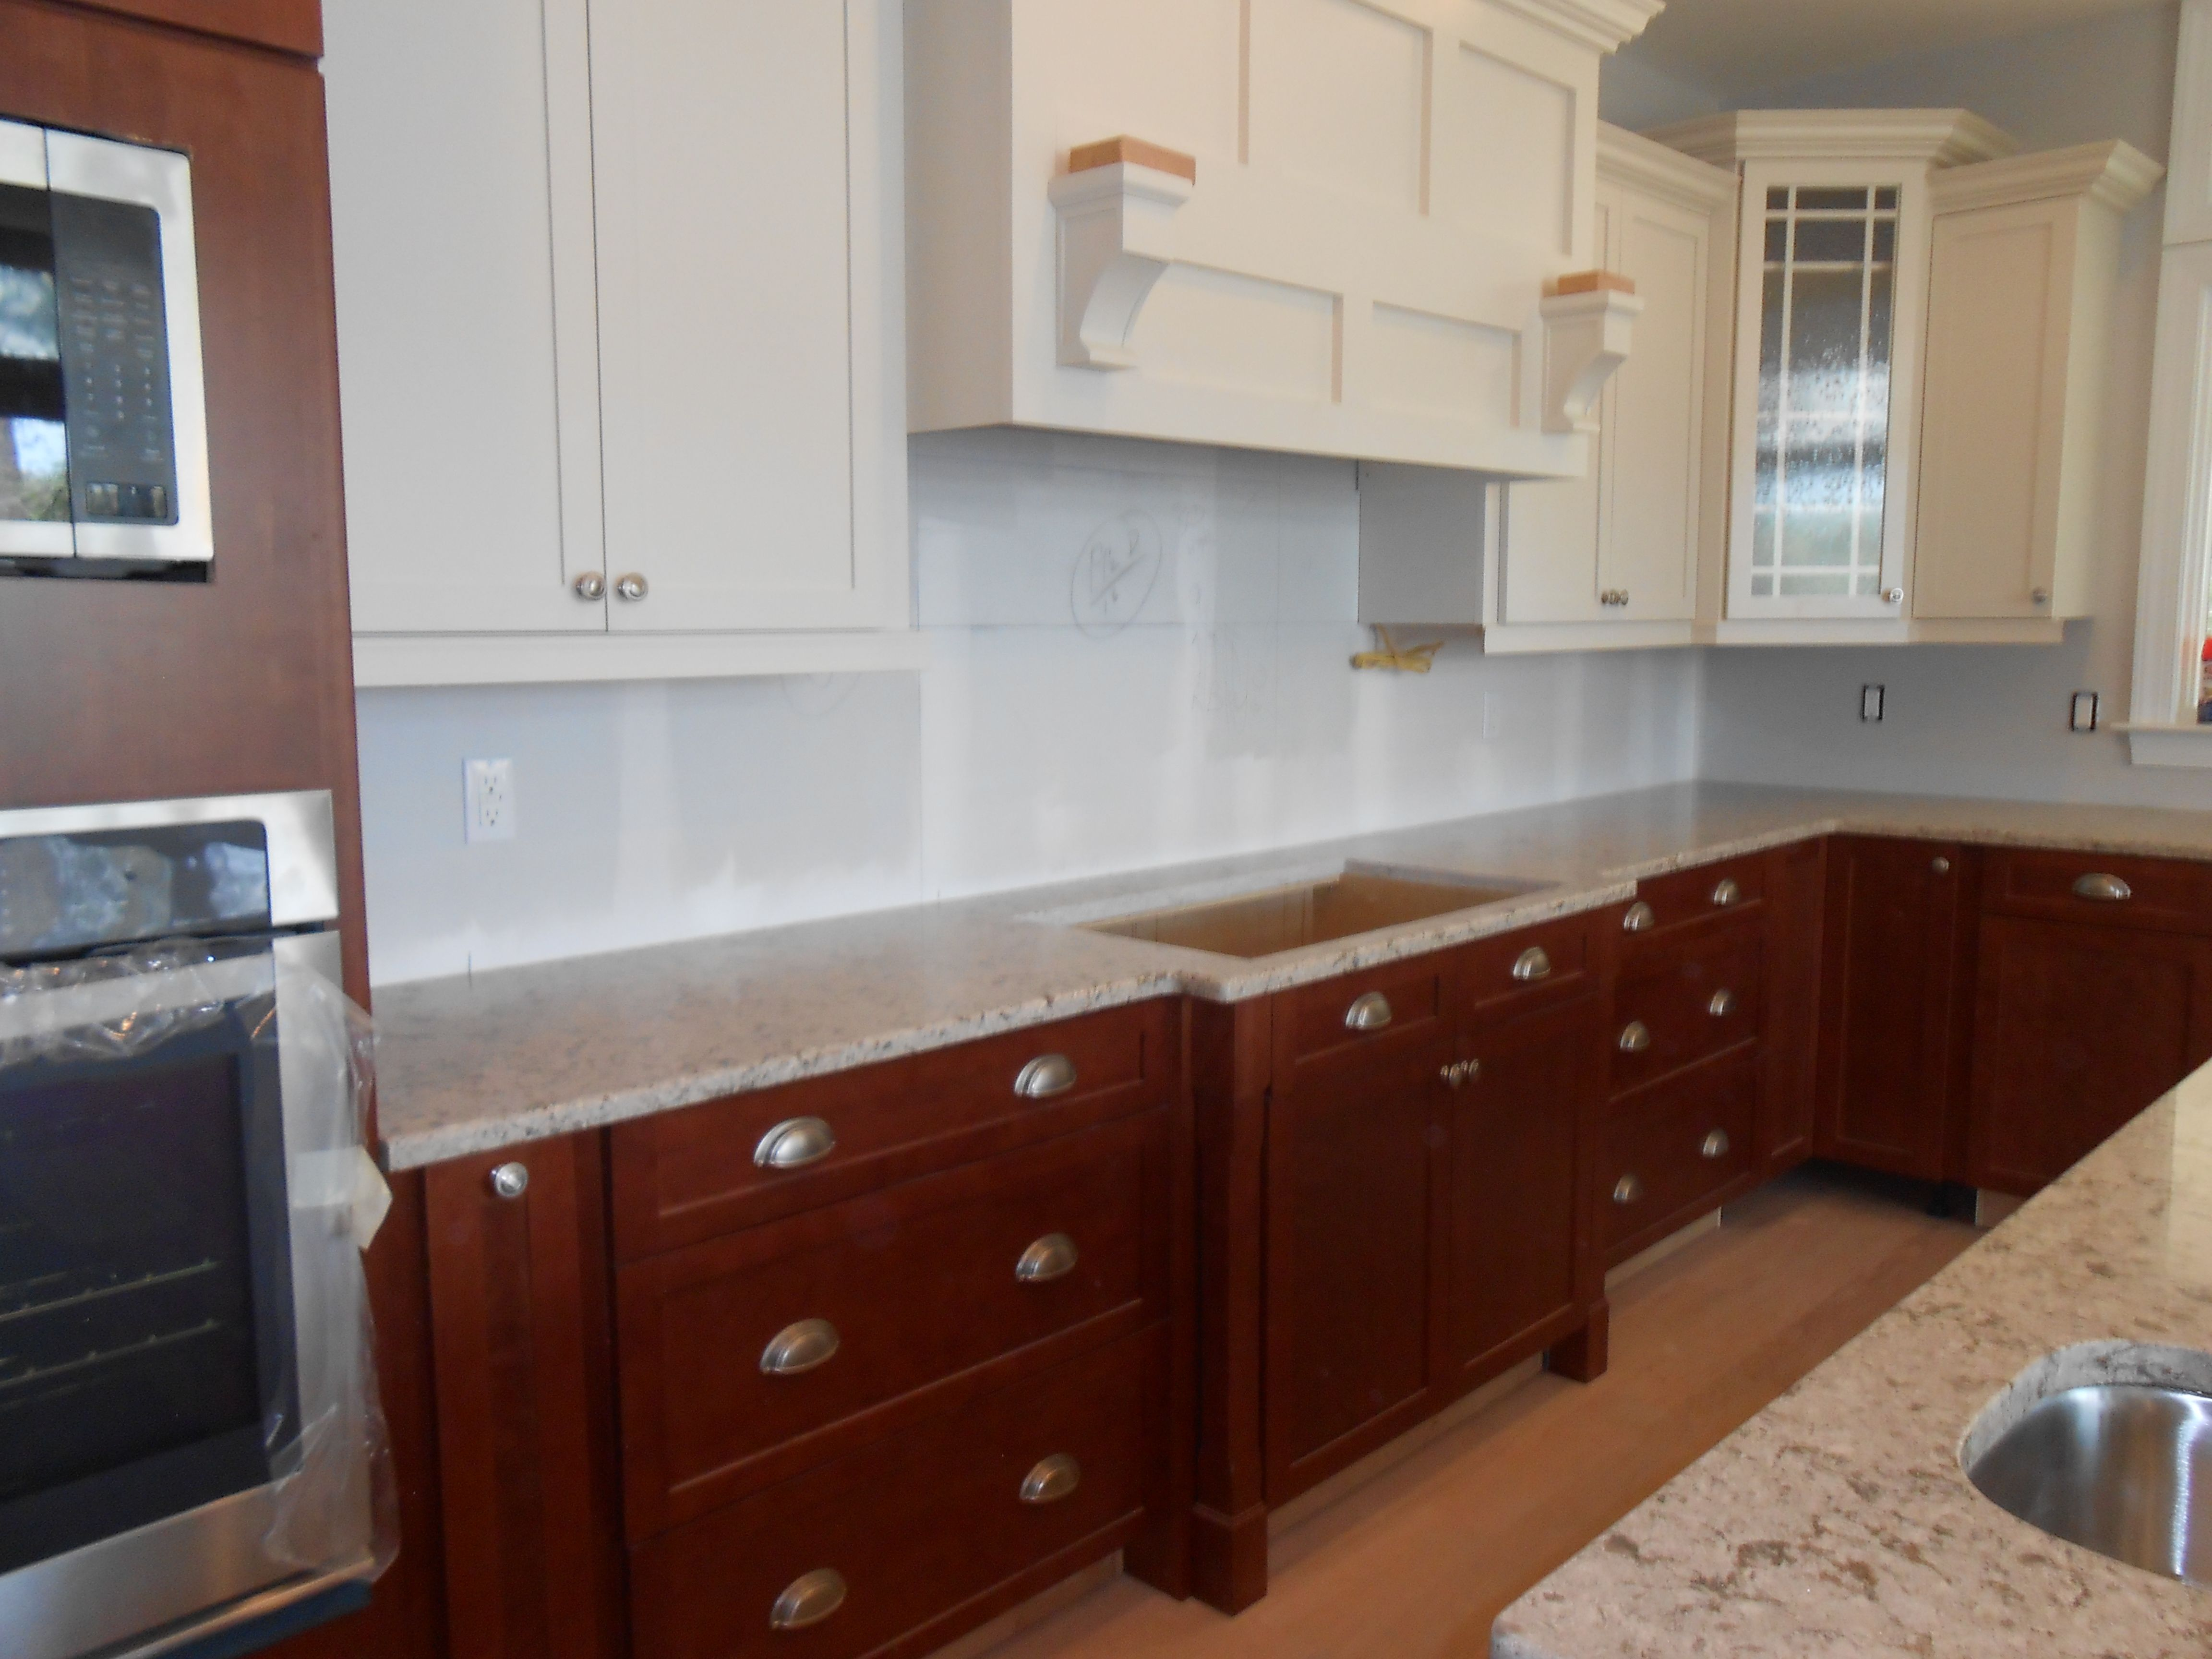 My kitchen is finally getting there (in progress). Cambria